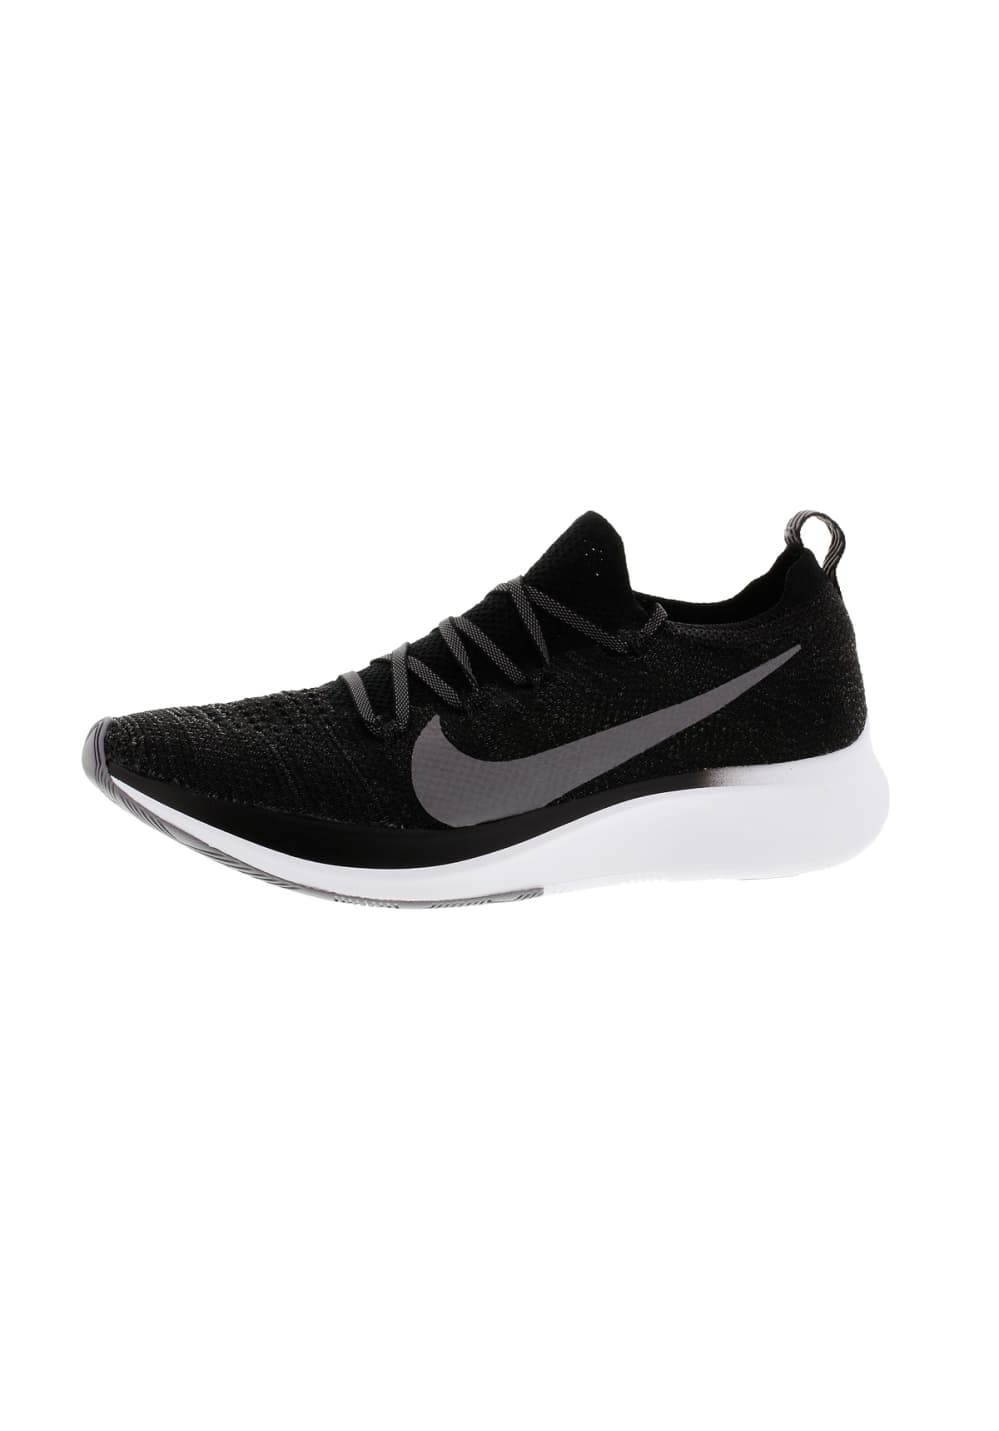 451a096ef21e Next. -60%. Nike. Zoom Fly Flyknit - Running shoes for Women. Regular  Price  Save 60% ...